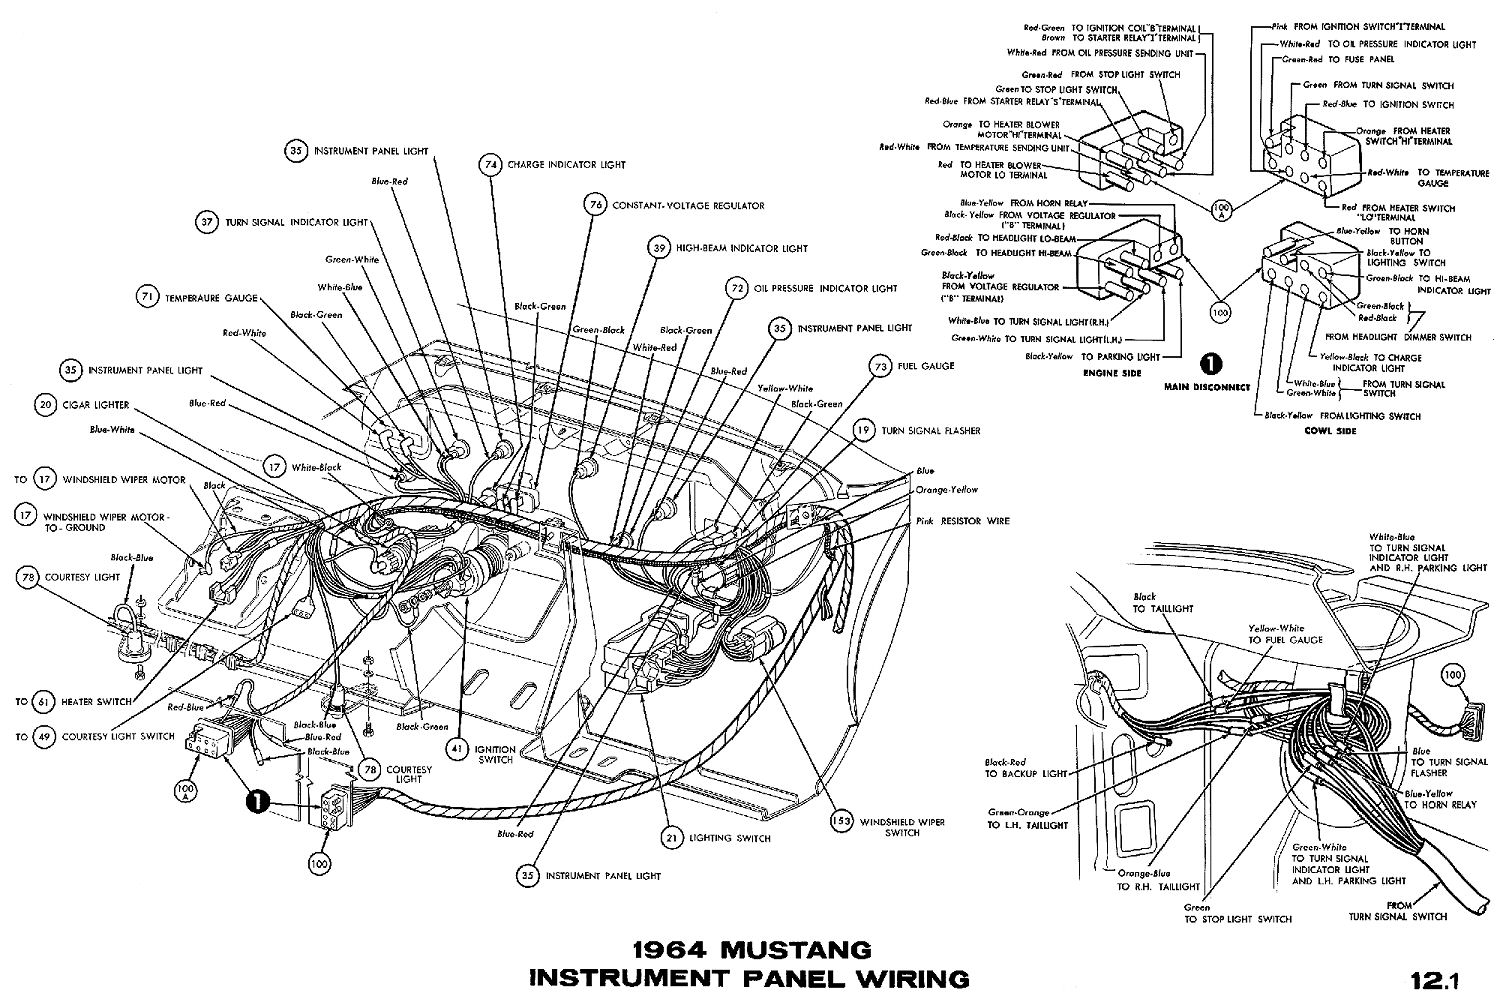 1964b 1964 mustang wiring diagrams average joe restoration 1967 mustang instrument cluster wiring diagram at sewacar.co